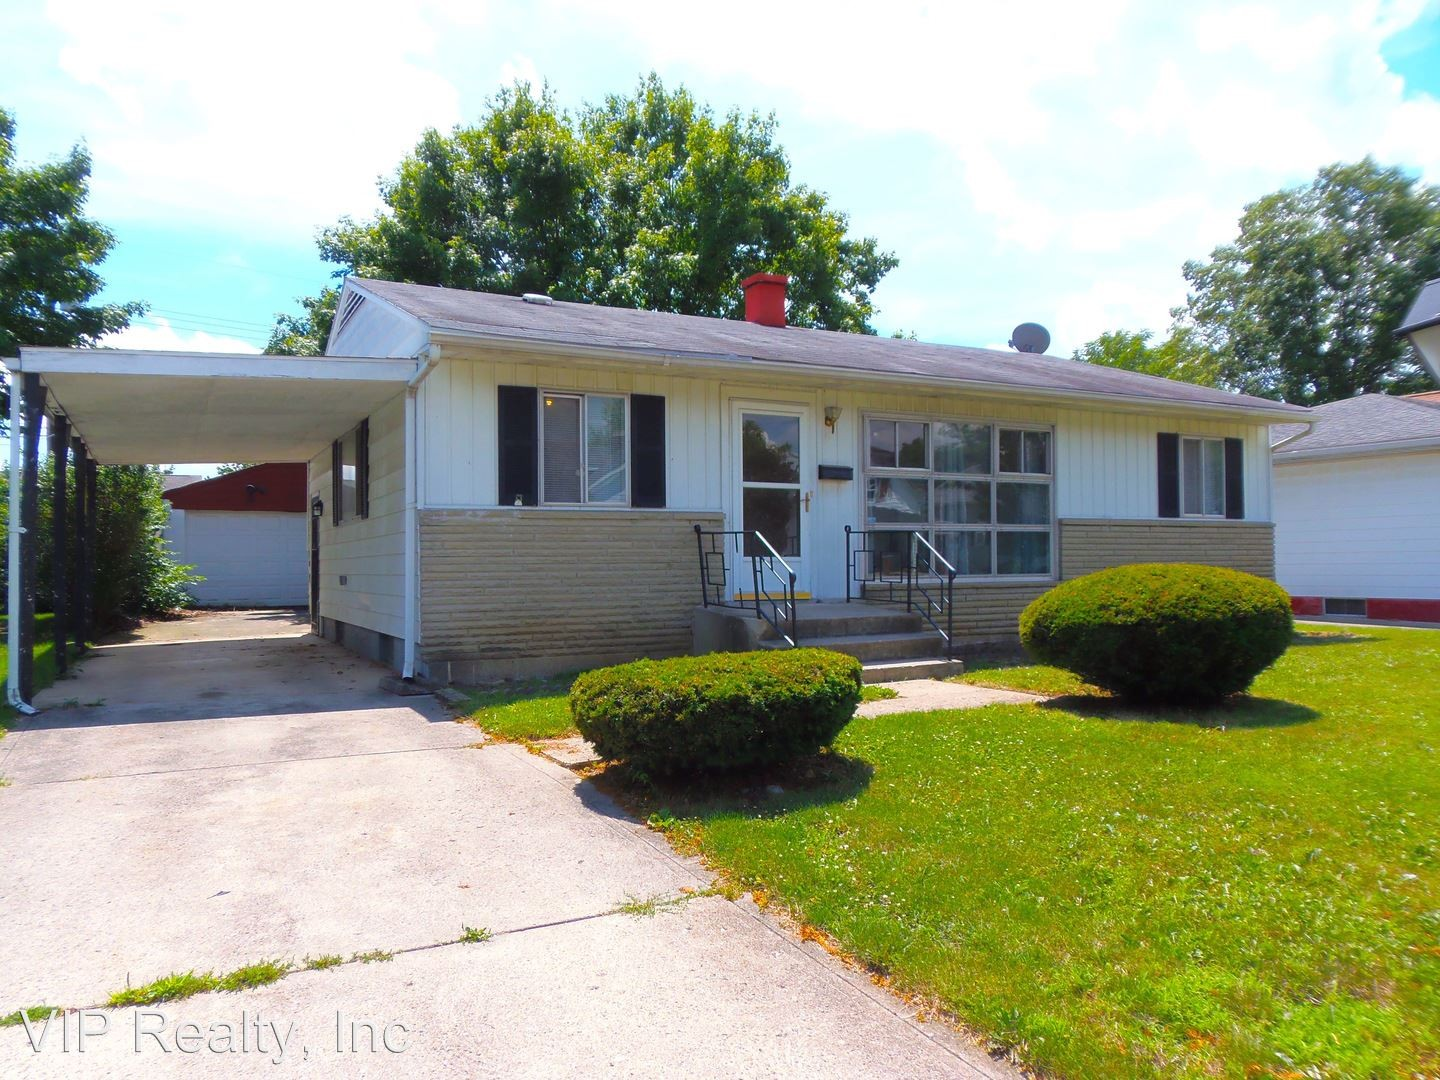 2485 eakin rd columbus oh 43204 3 bedroom house for rent